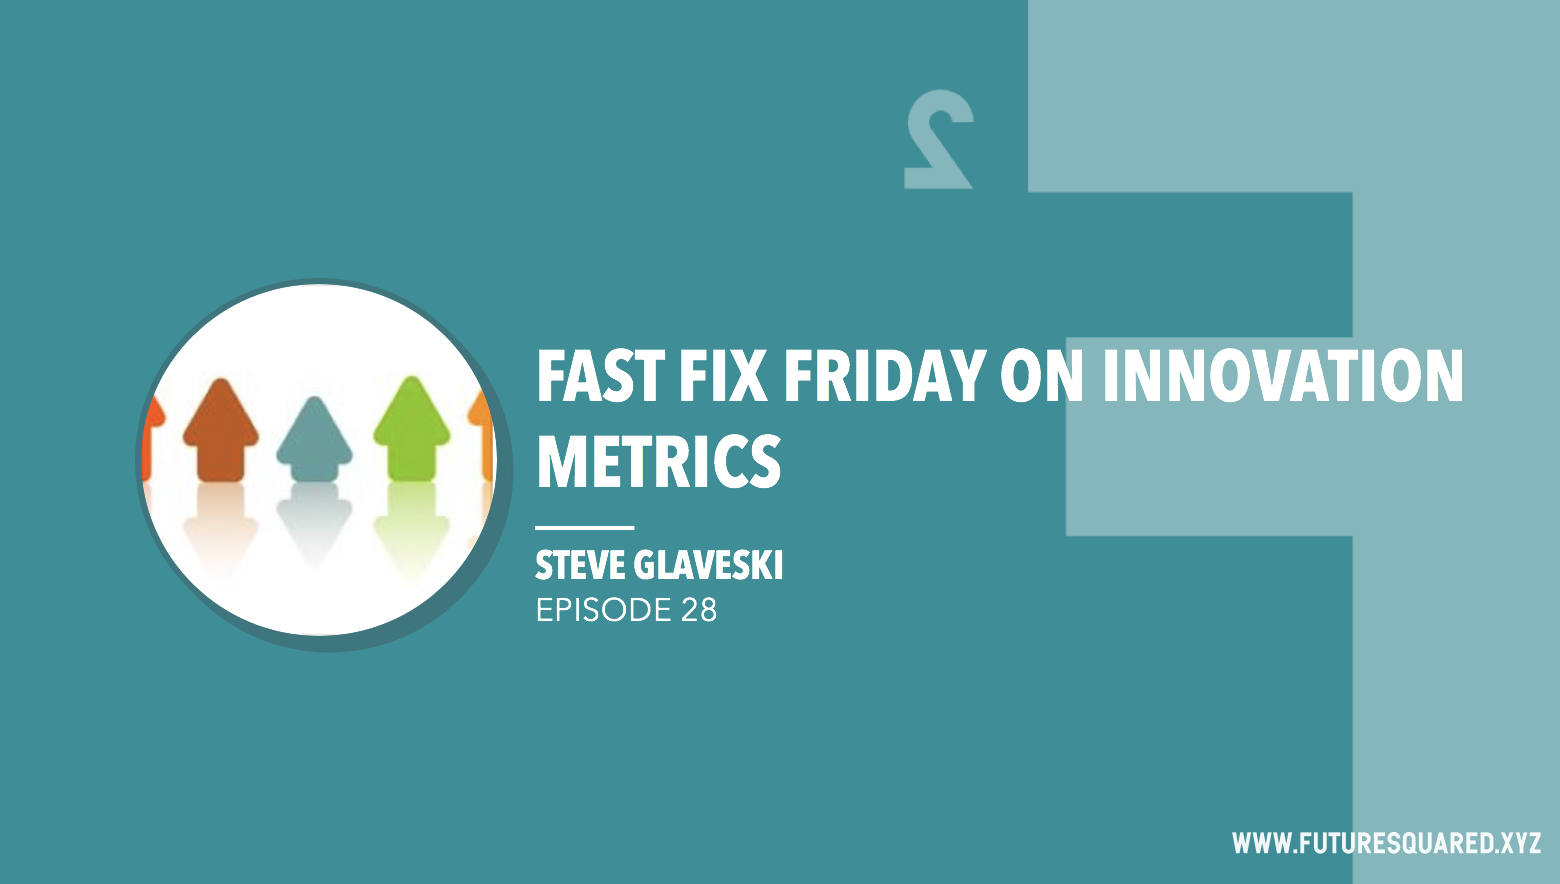 Future Squared Episode #28: Fast Fix Friday on Innovation Metrics